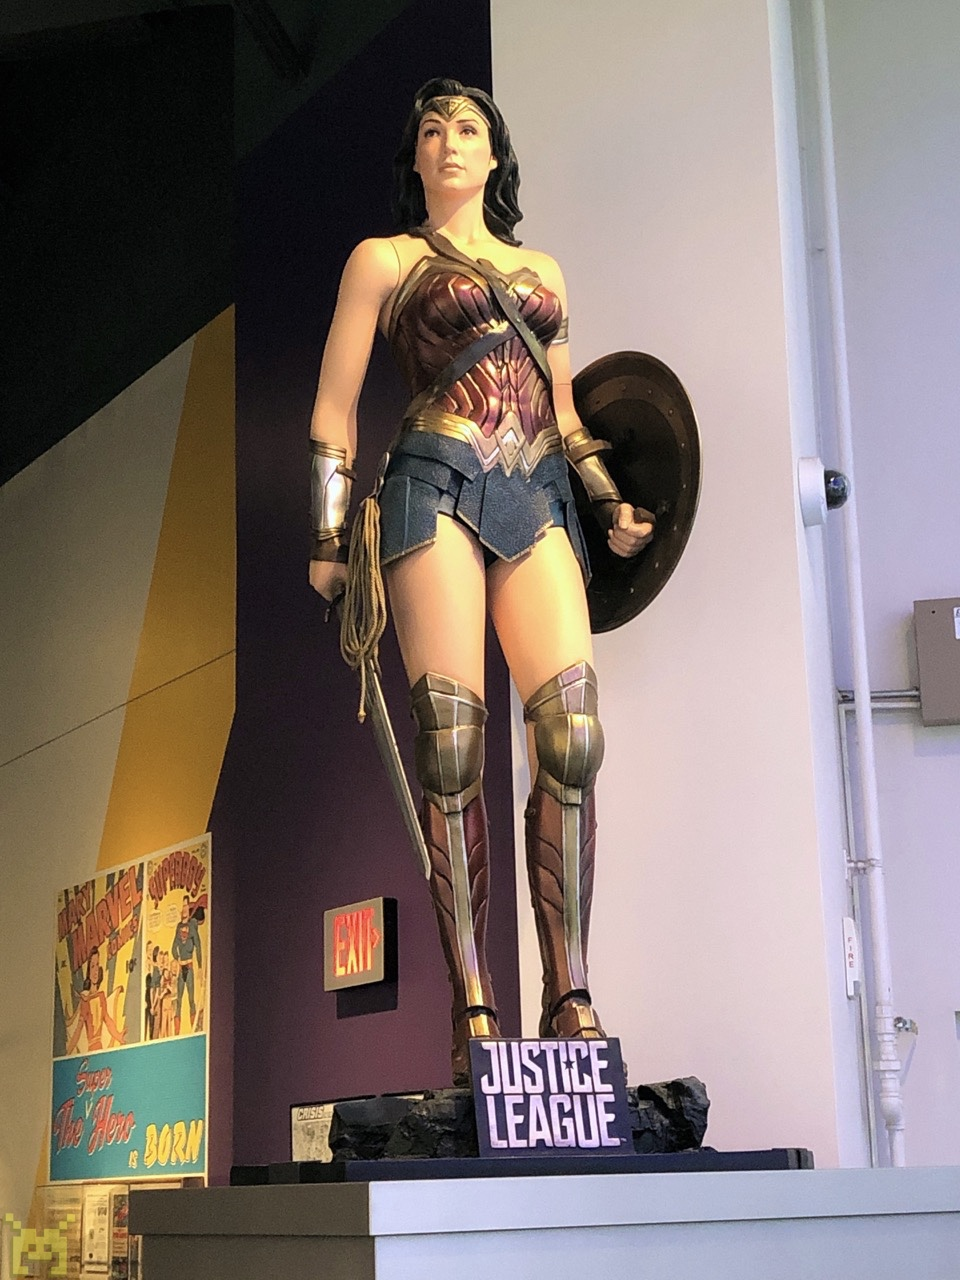 Wonder Woman of the Justice League